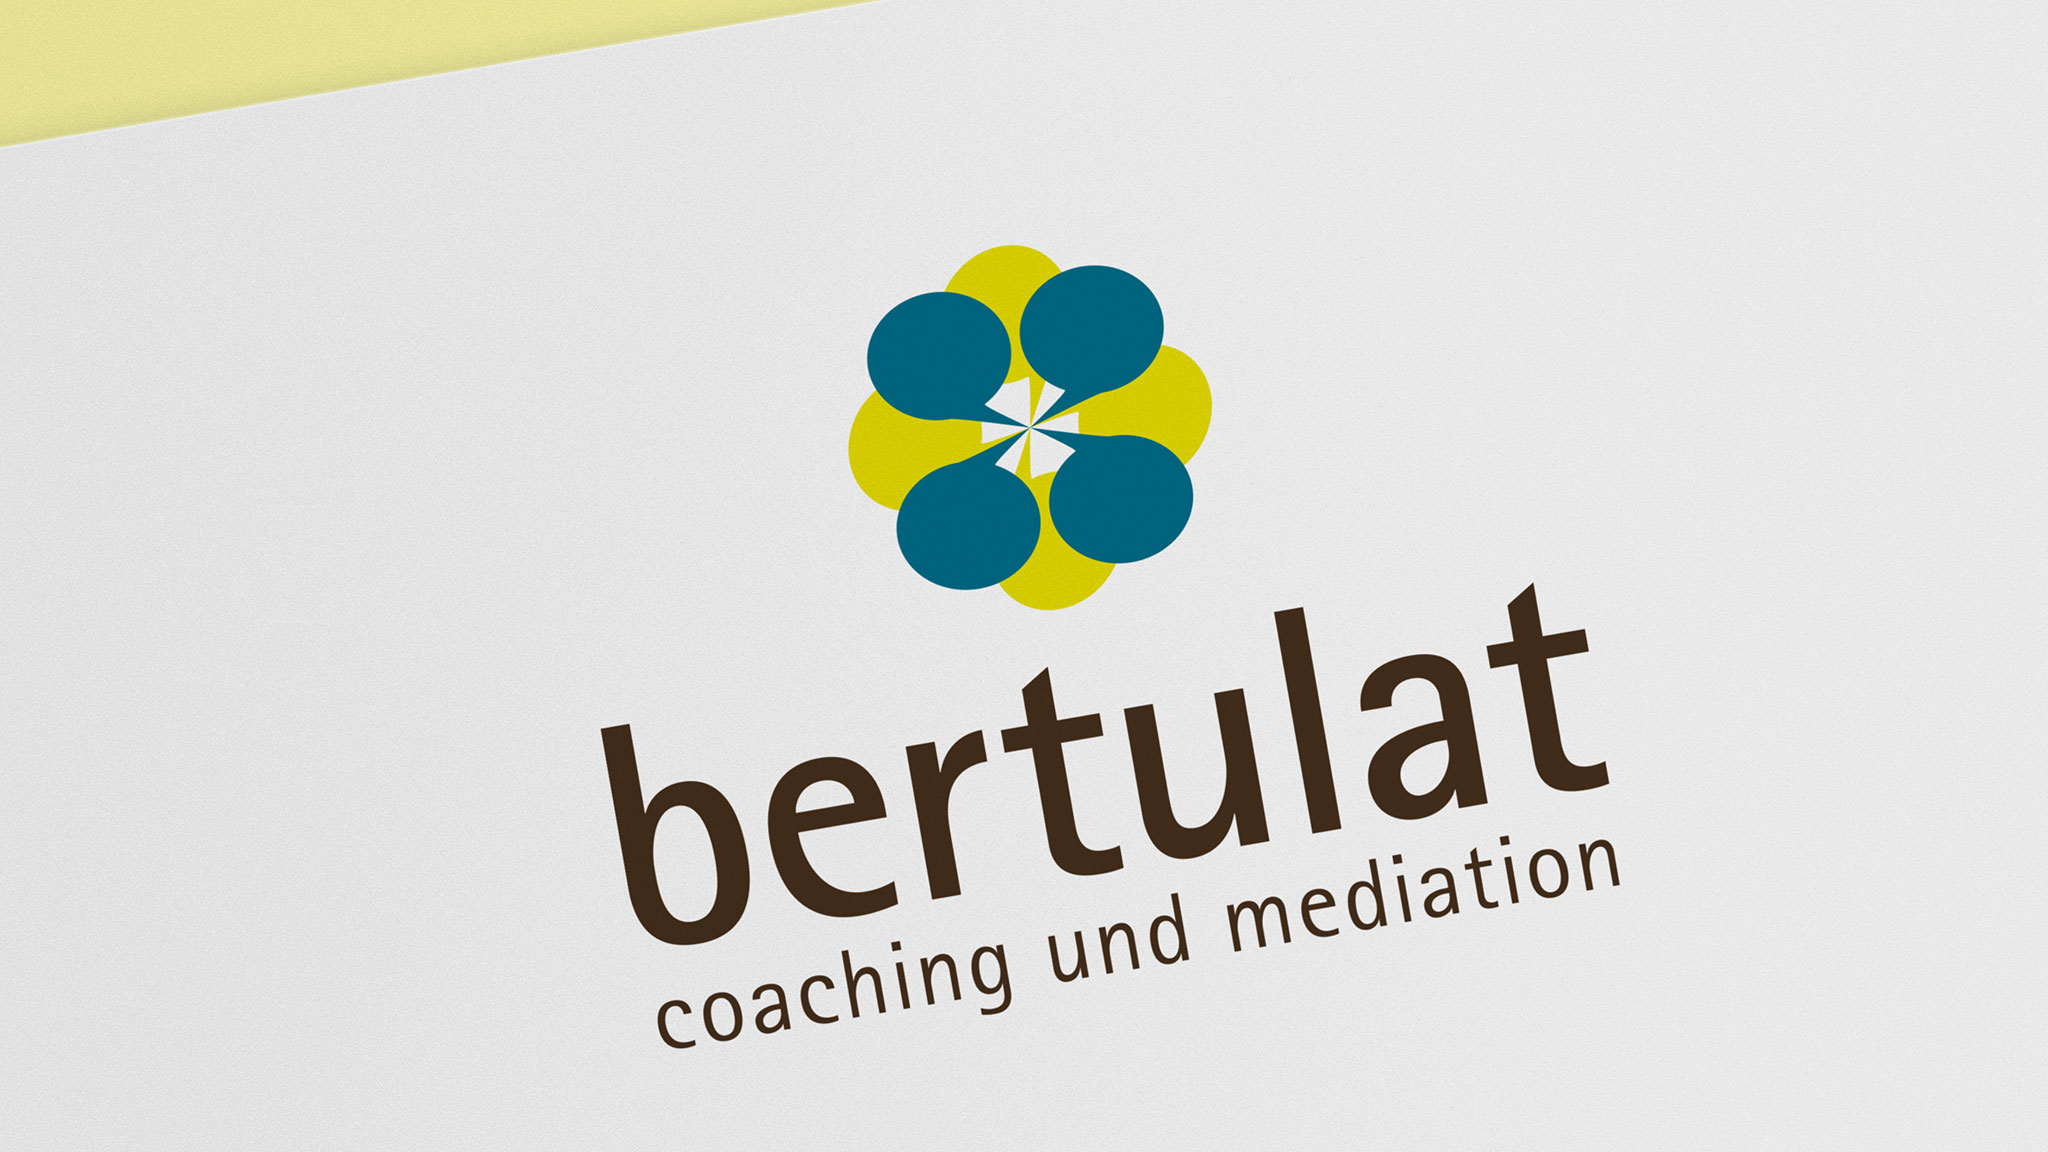 08_BertulatMediation_Coaching-Corporate-Design-1